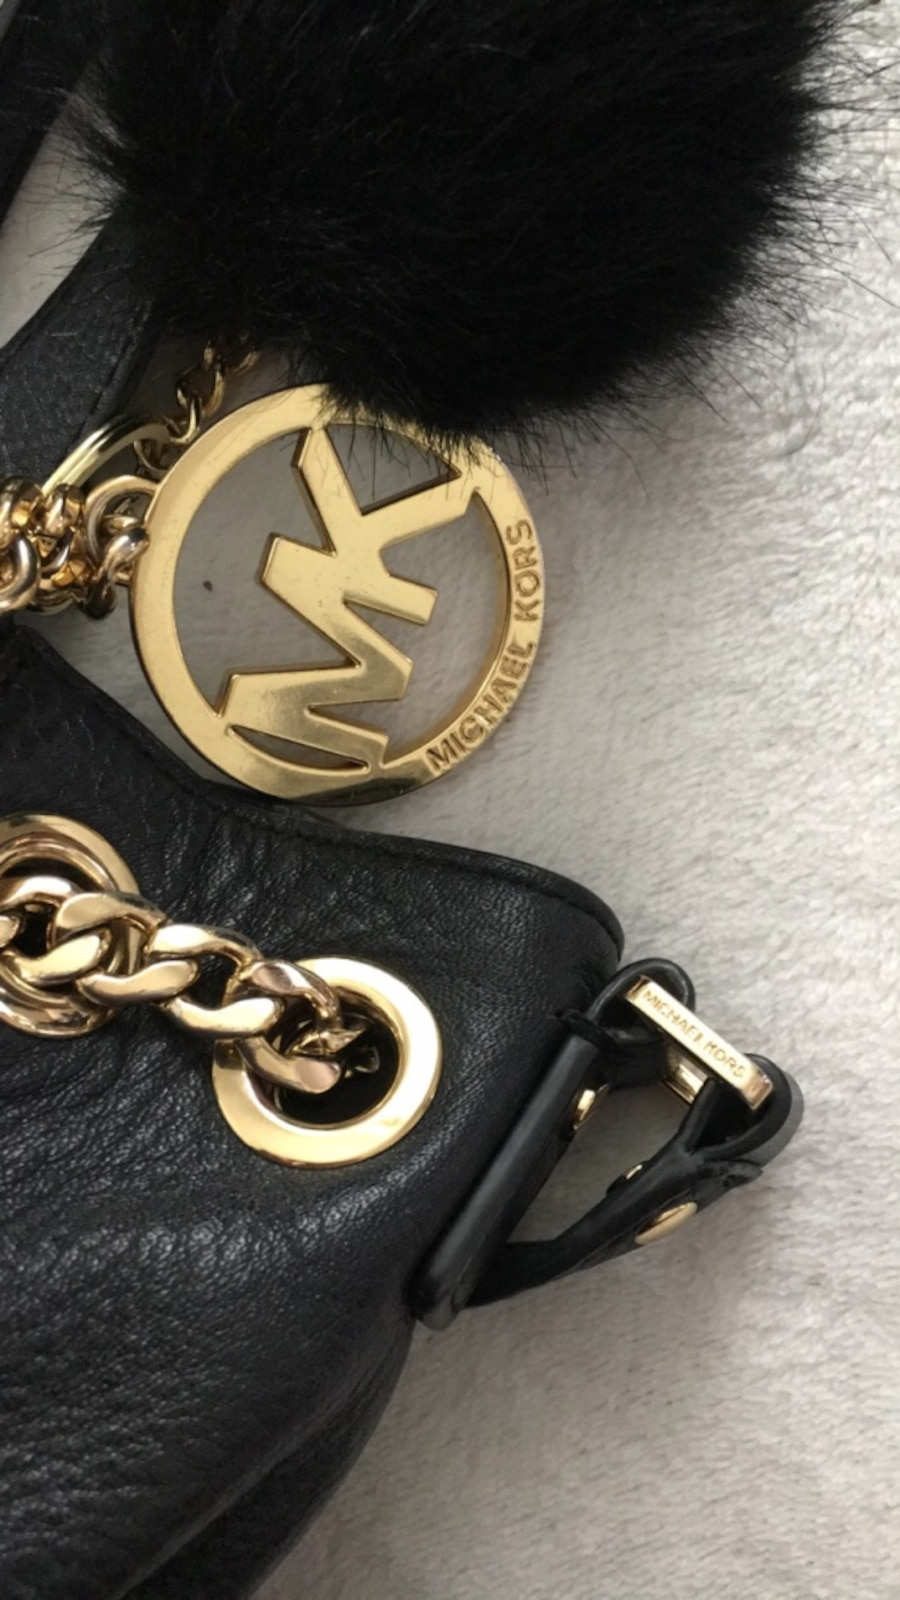 Michael Kors handbag Gold chain - kr 1 800